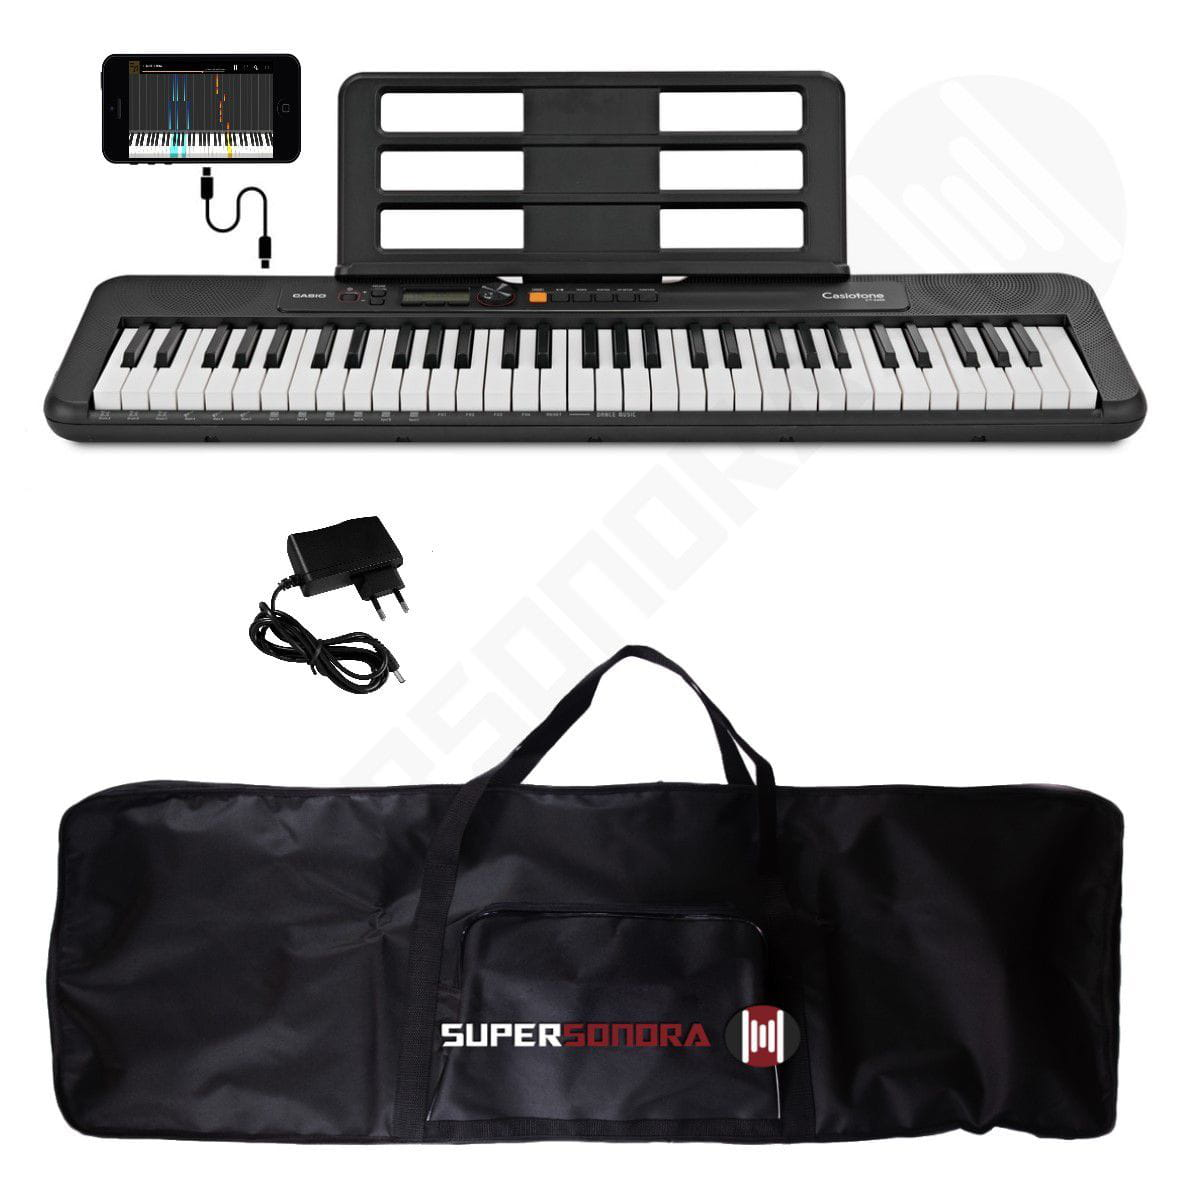 Kit Teclado Musical CASIOTONE CT S200 CASIO Preto Aplicativo Chordana Play + Capa